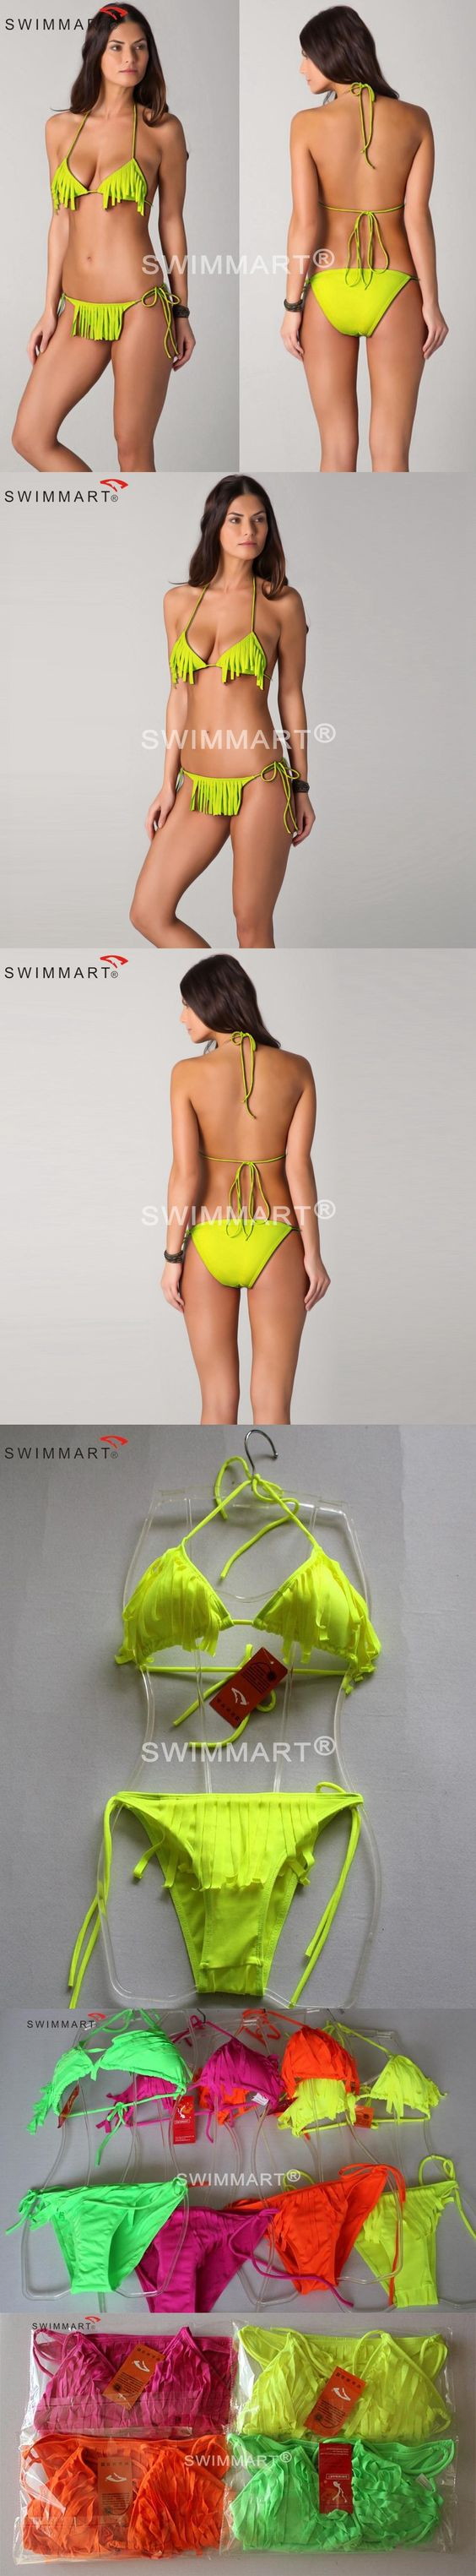 Hot Sale Push Up Bikinis 2016 Vintage Swimsuits Designer Fashion Crochet Bikinis set Both Top+Bottom Tassel Swimsuit S.M.L.XL $9.99